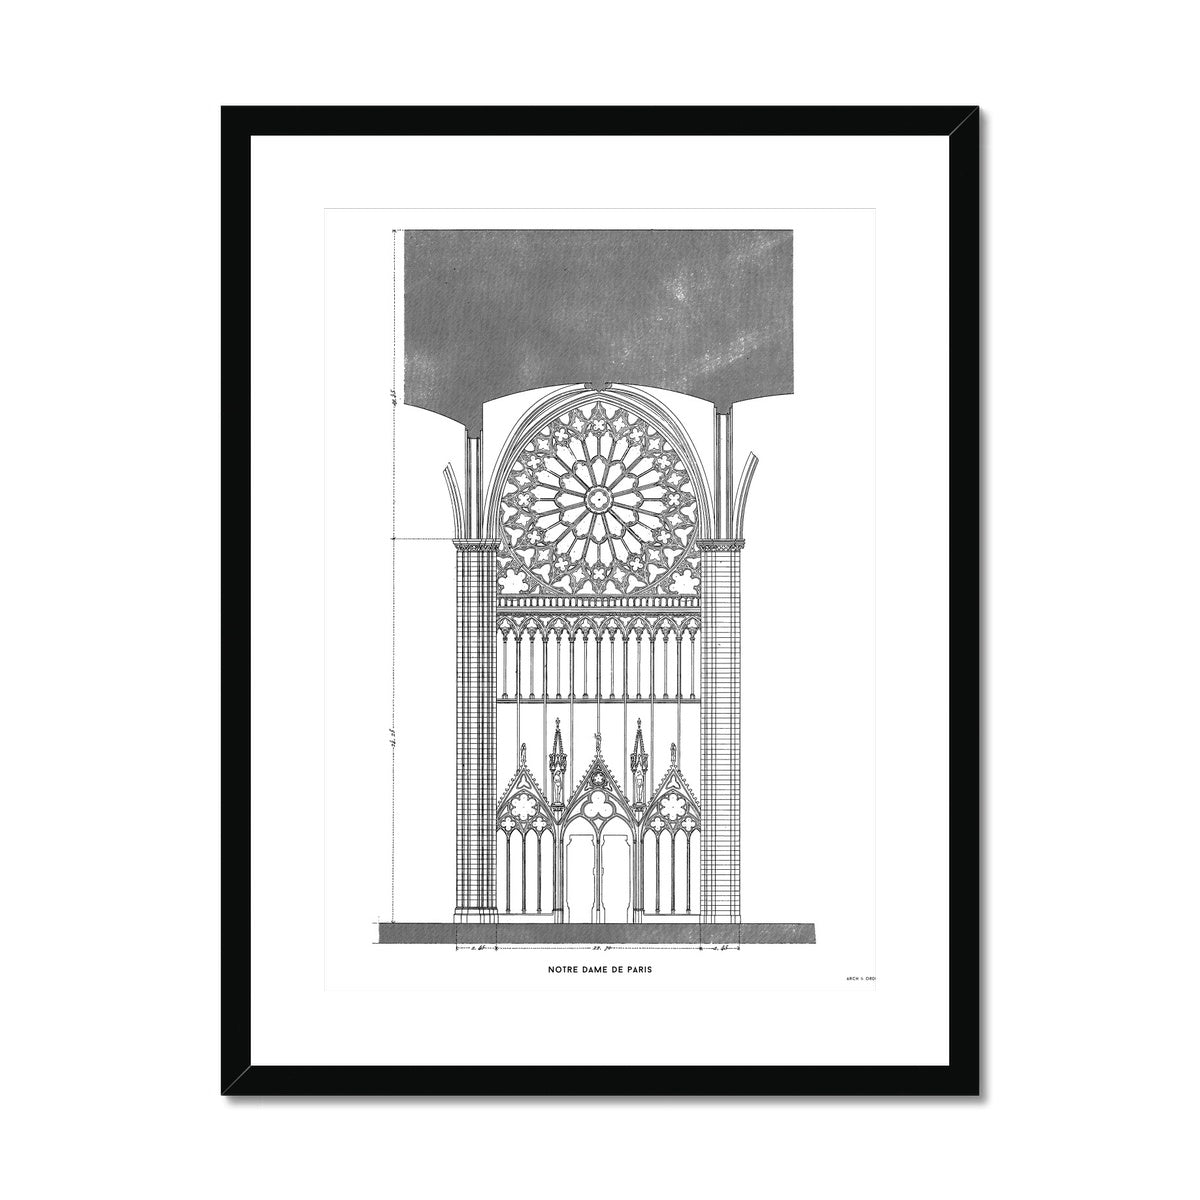 Notre Dame de Paris - South Rose Window Elevation - White -  Framed & Mounted Print